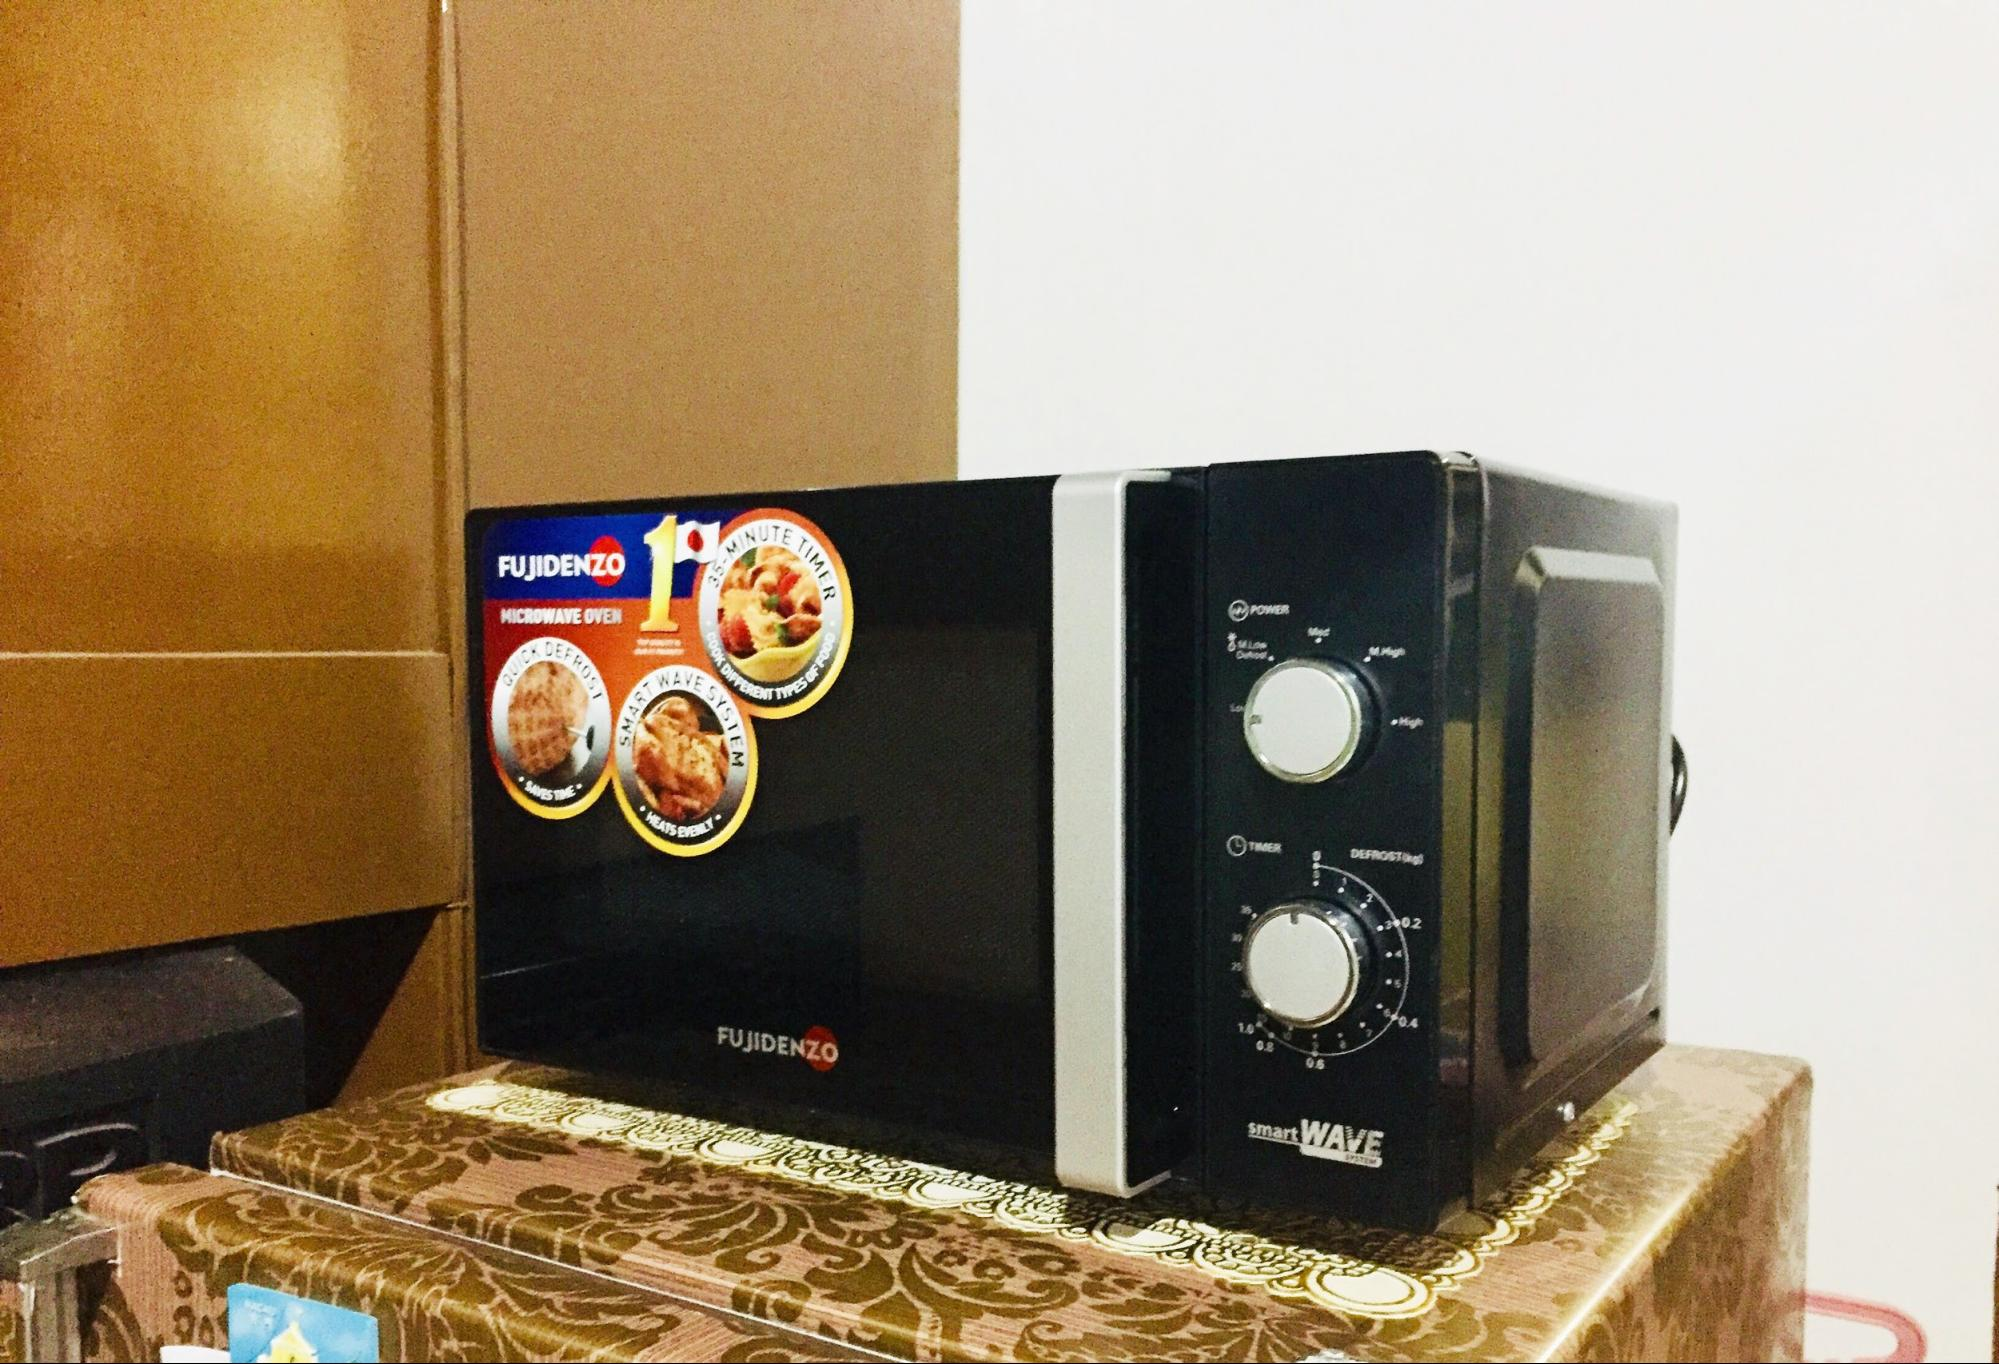 Microwave oven - Fujidenzo Microwave Oven MM22 BL